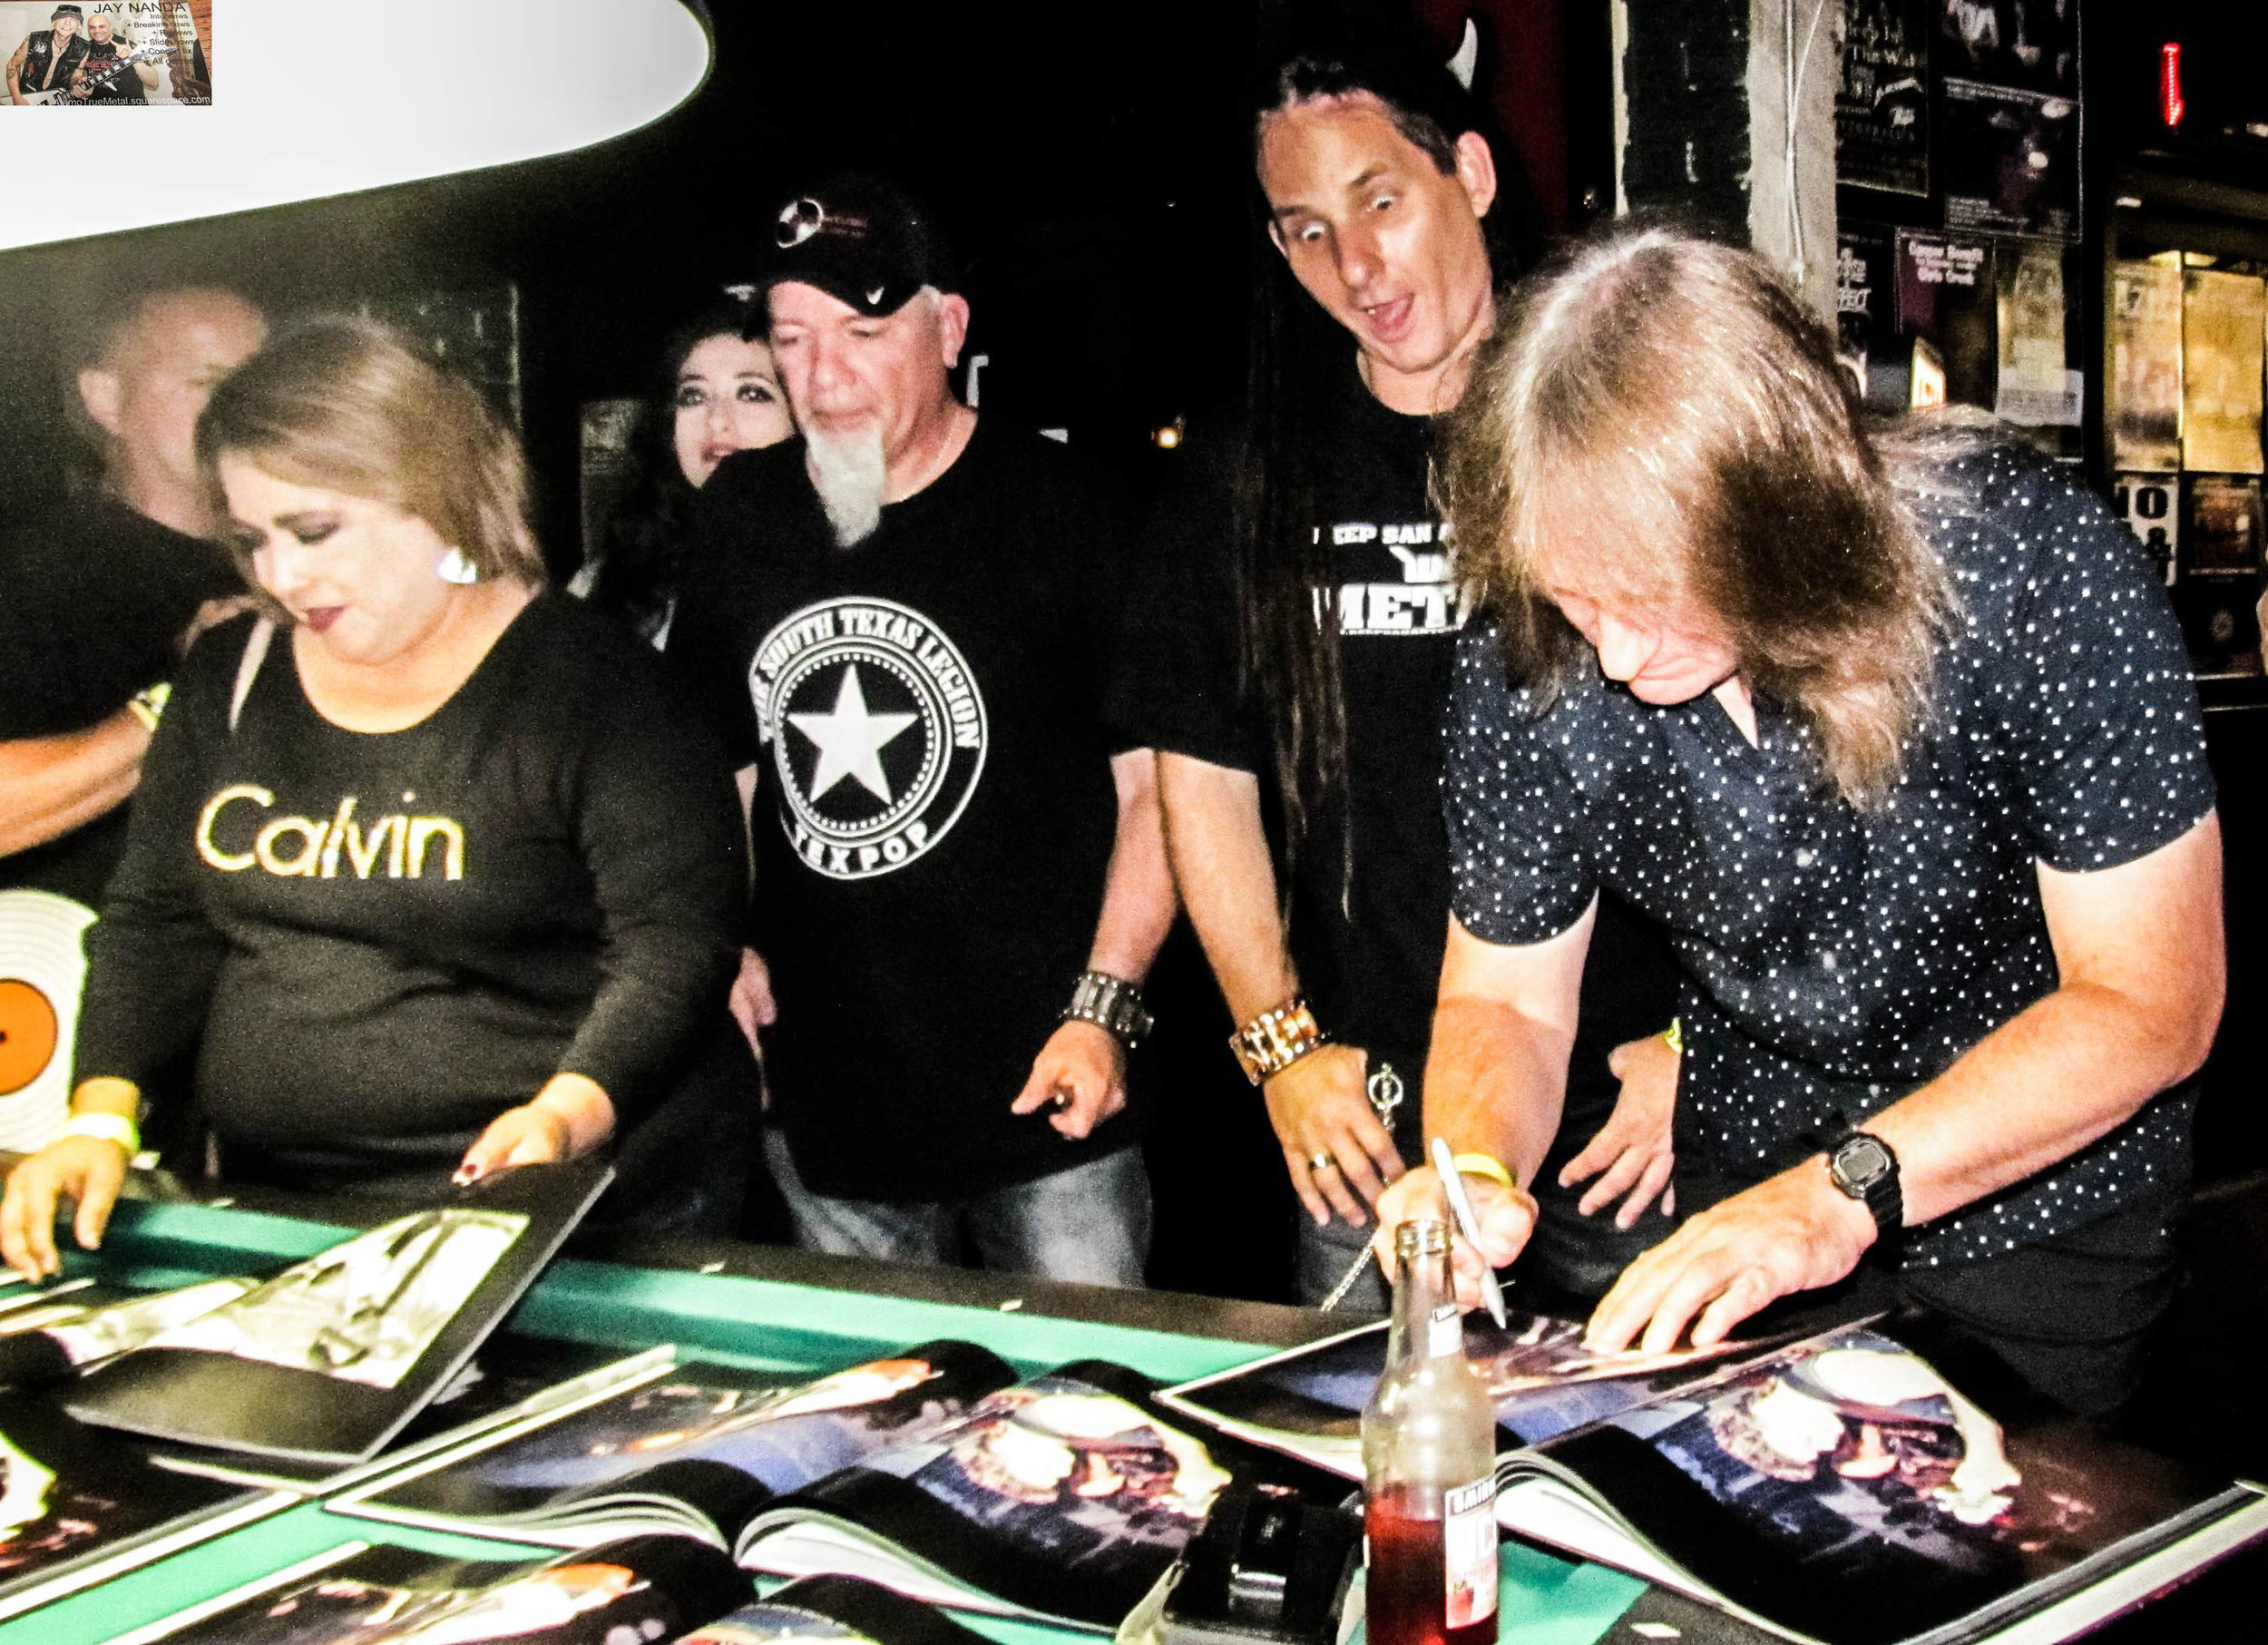 Even In Death singer Sean Nations expresses his amazement as Ron Jarzombek signs a picture of himself.